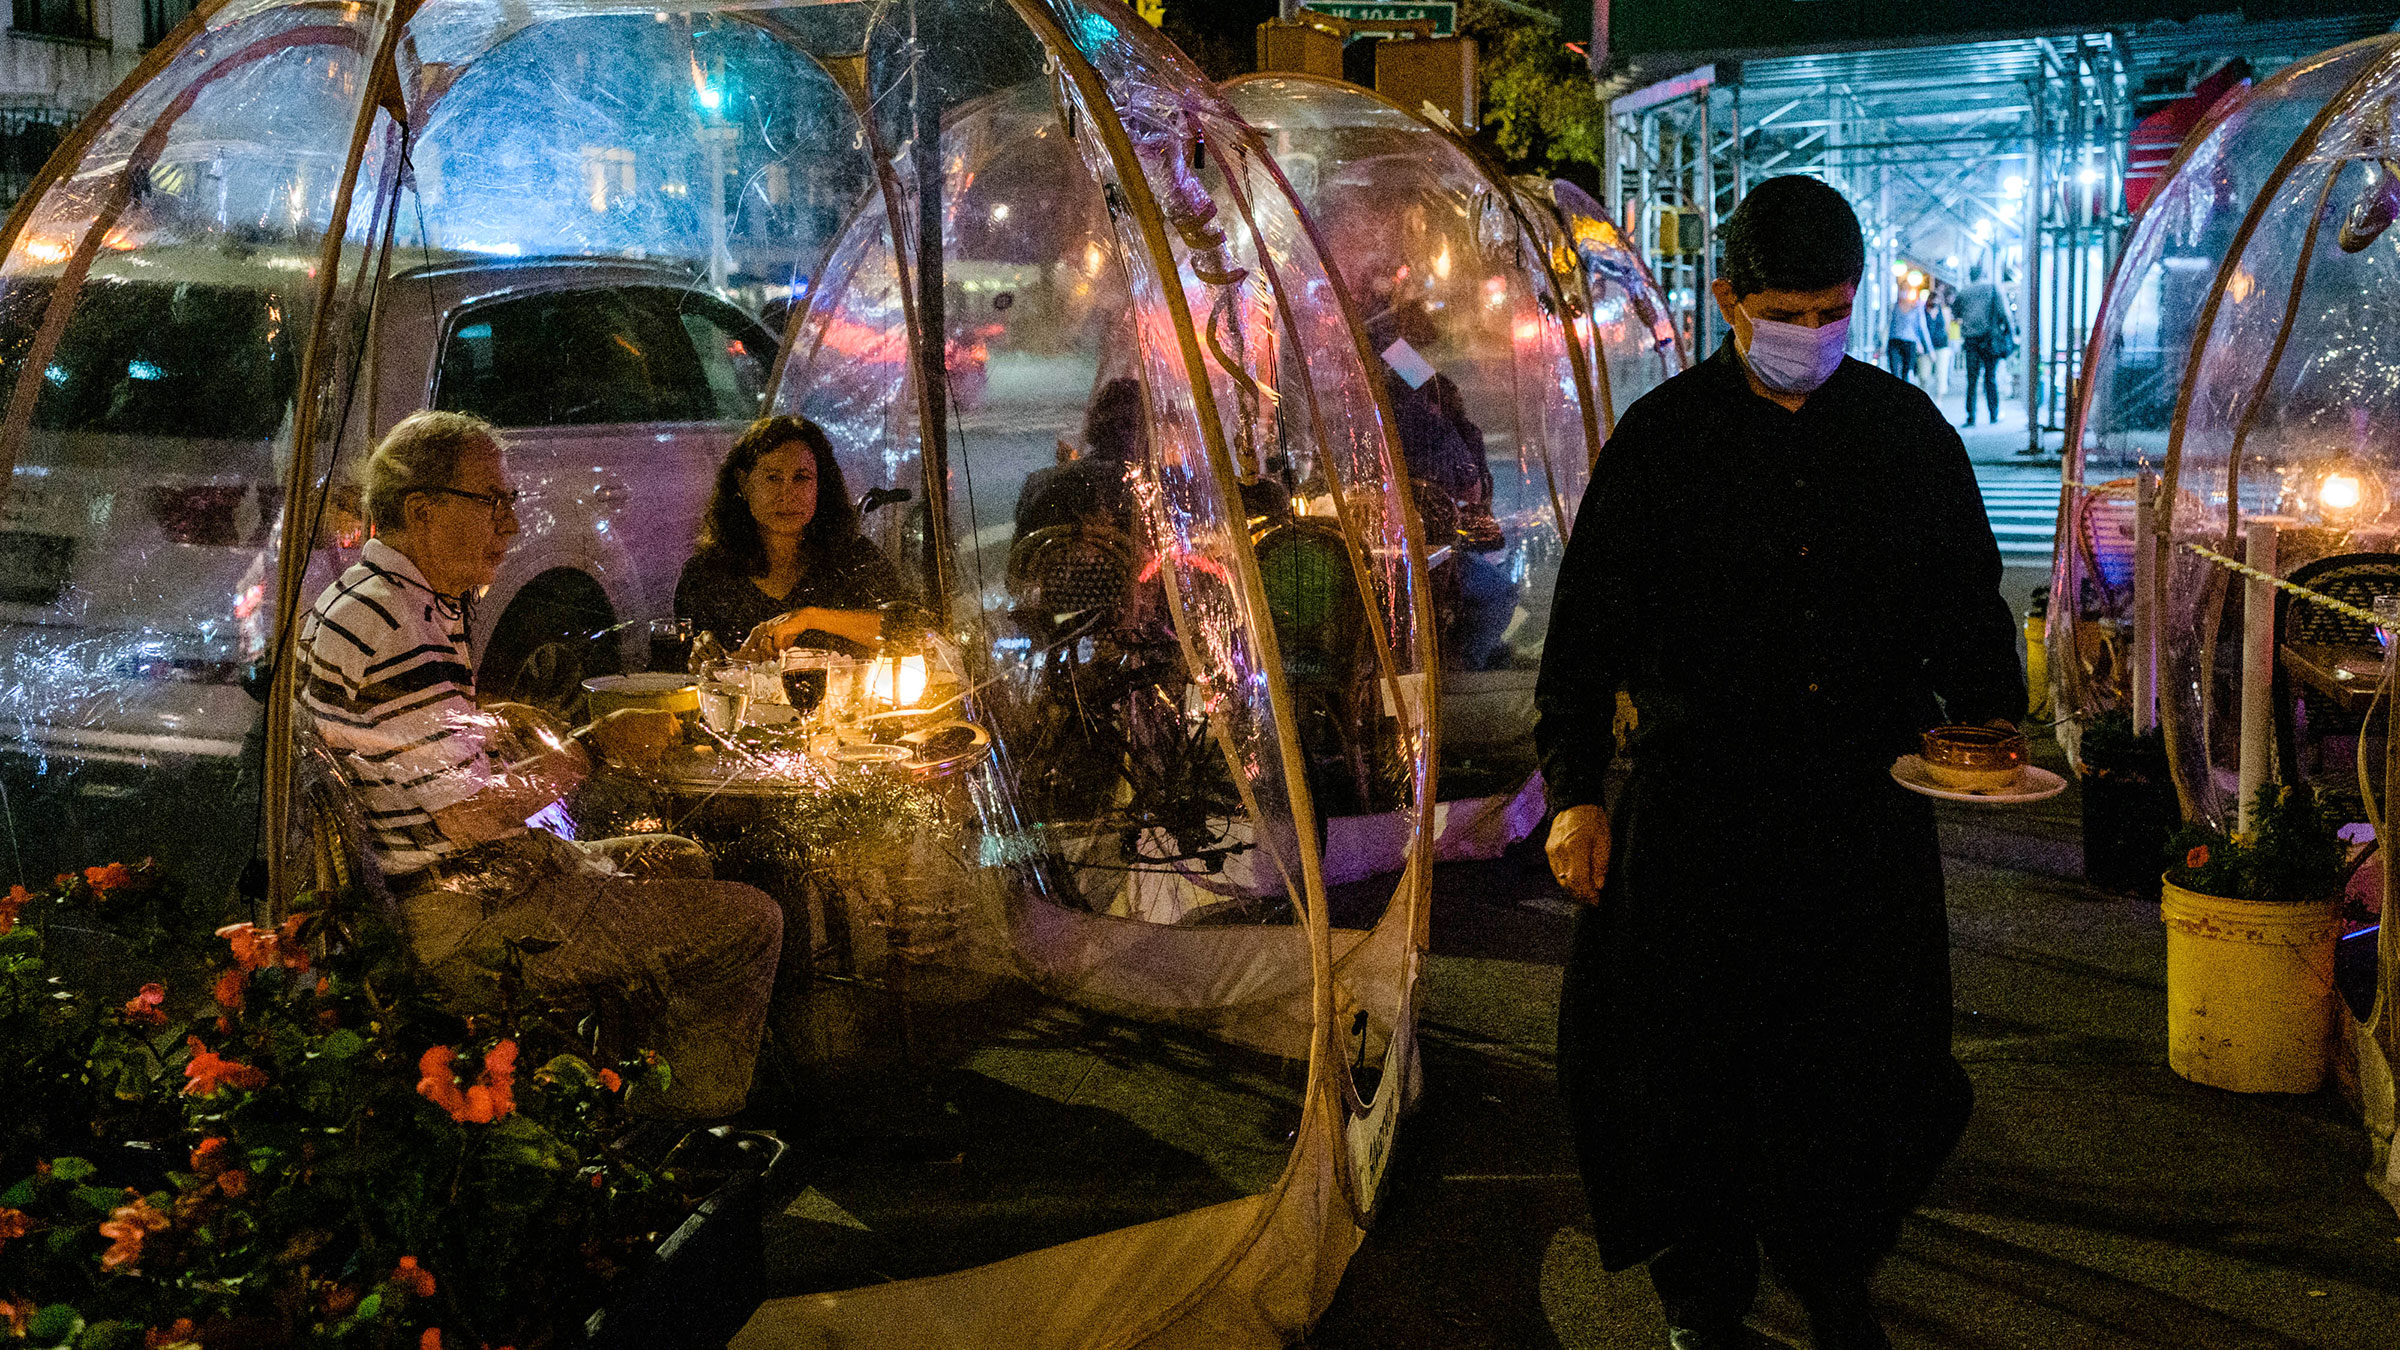 Customers dine in bubble tents at a restaurant in New York on November 10.